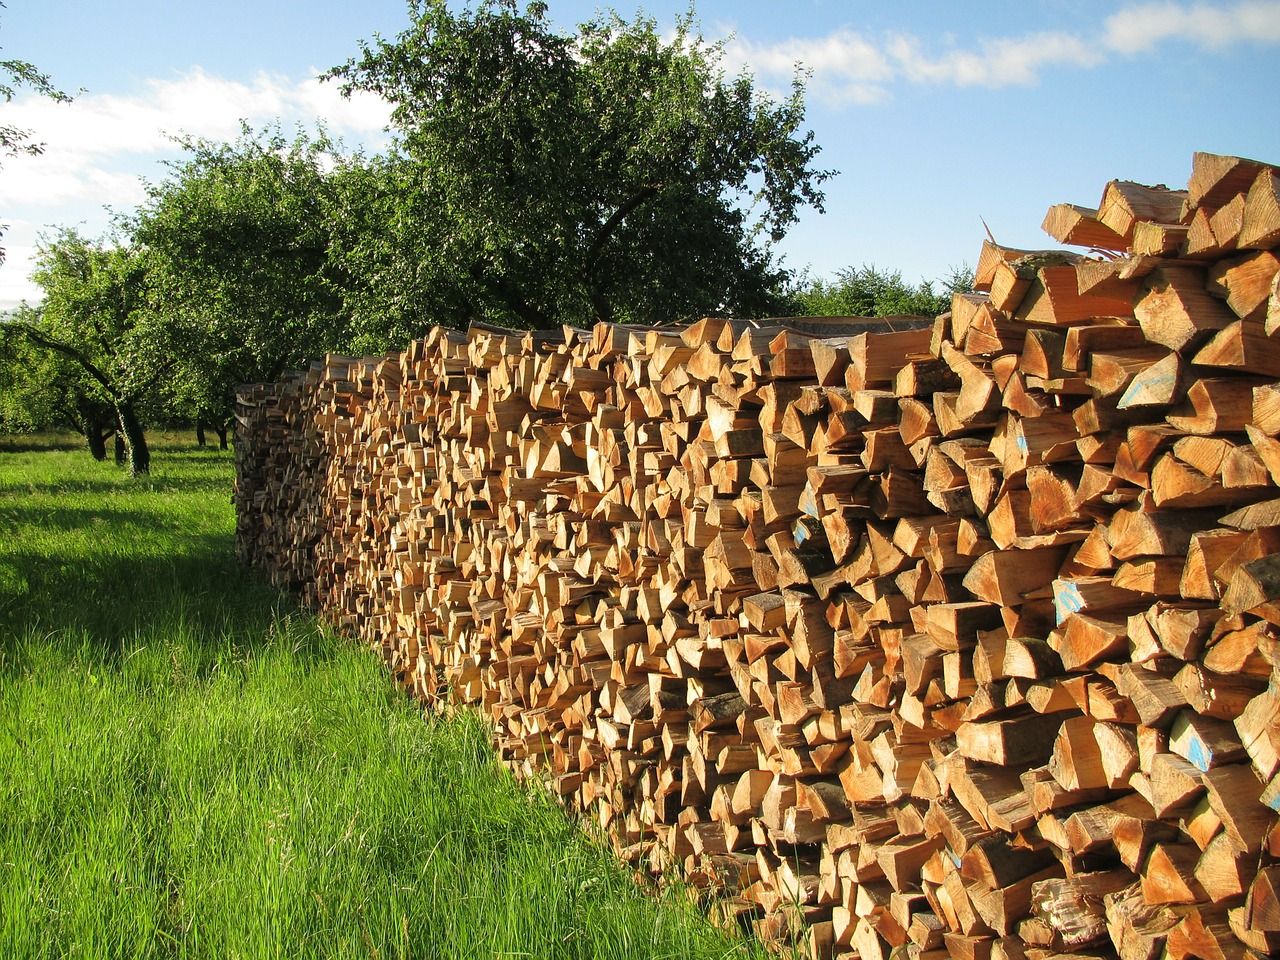 Energy from Biomass: Prospects and Challenges